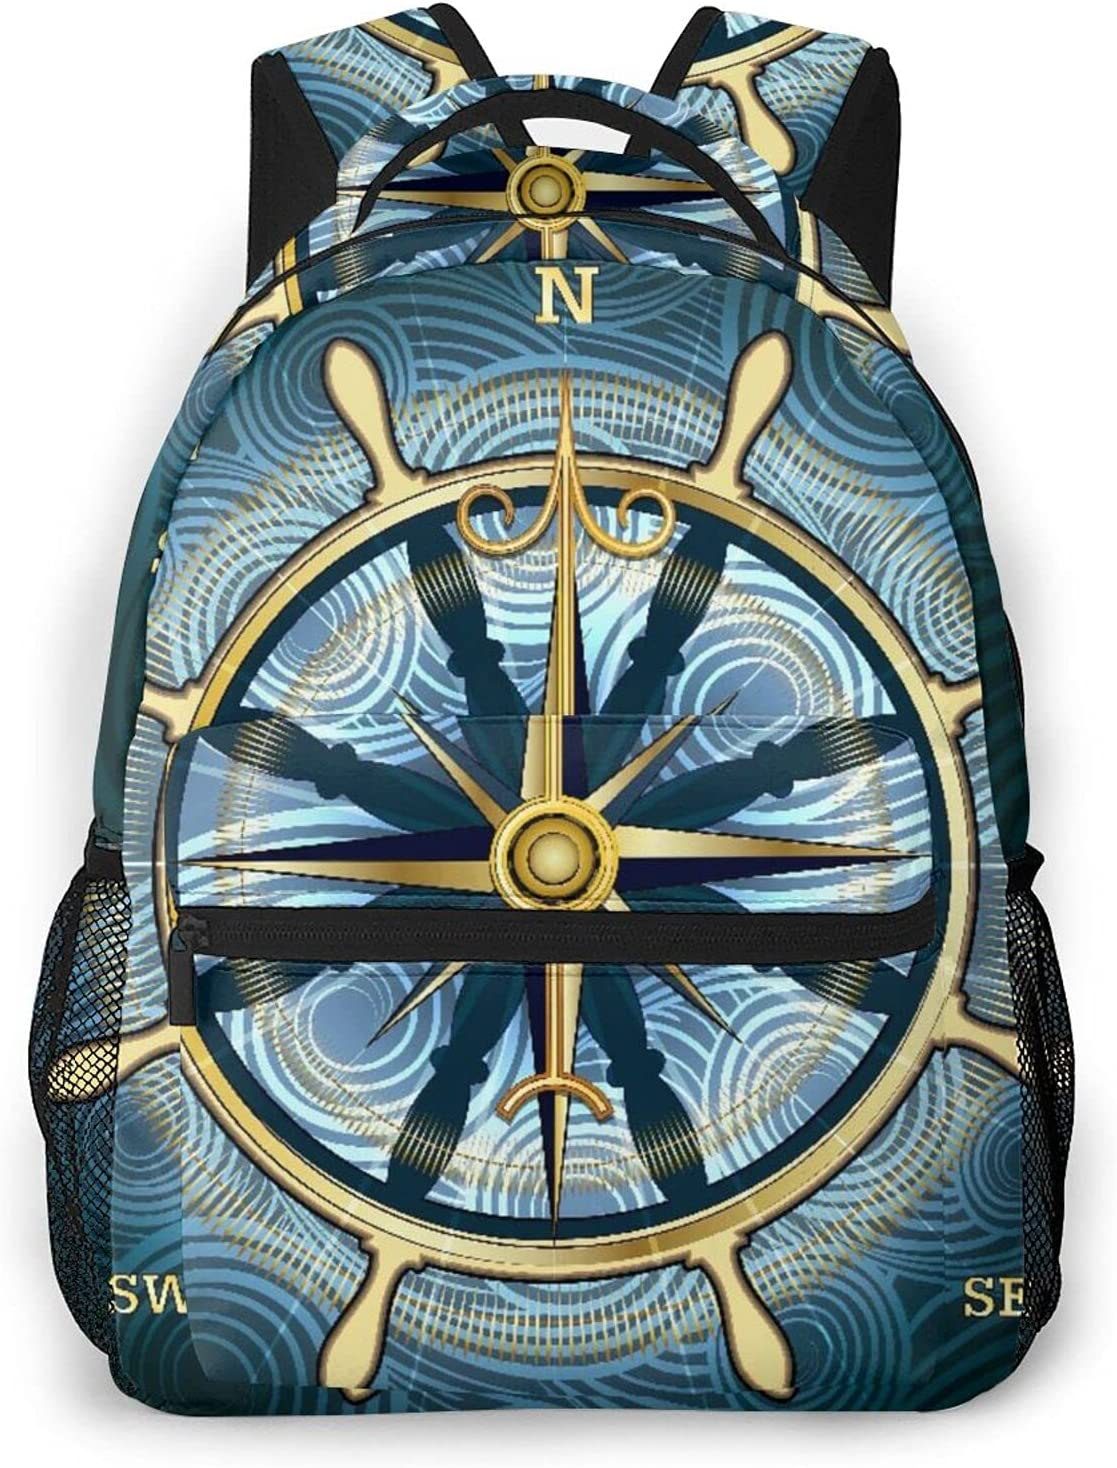 GUVICINIR Everyday Essentials Backpack Compass Golden Navigation Cheap mail order sales 2021 model